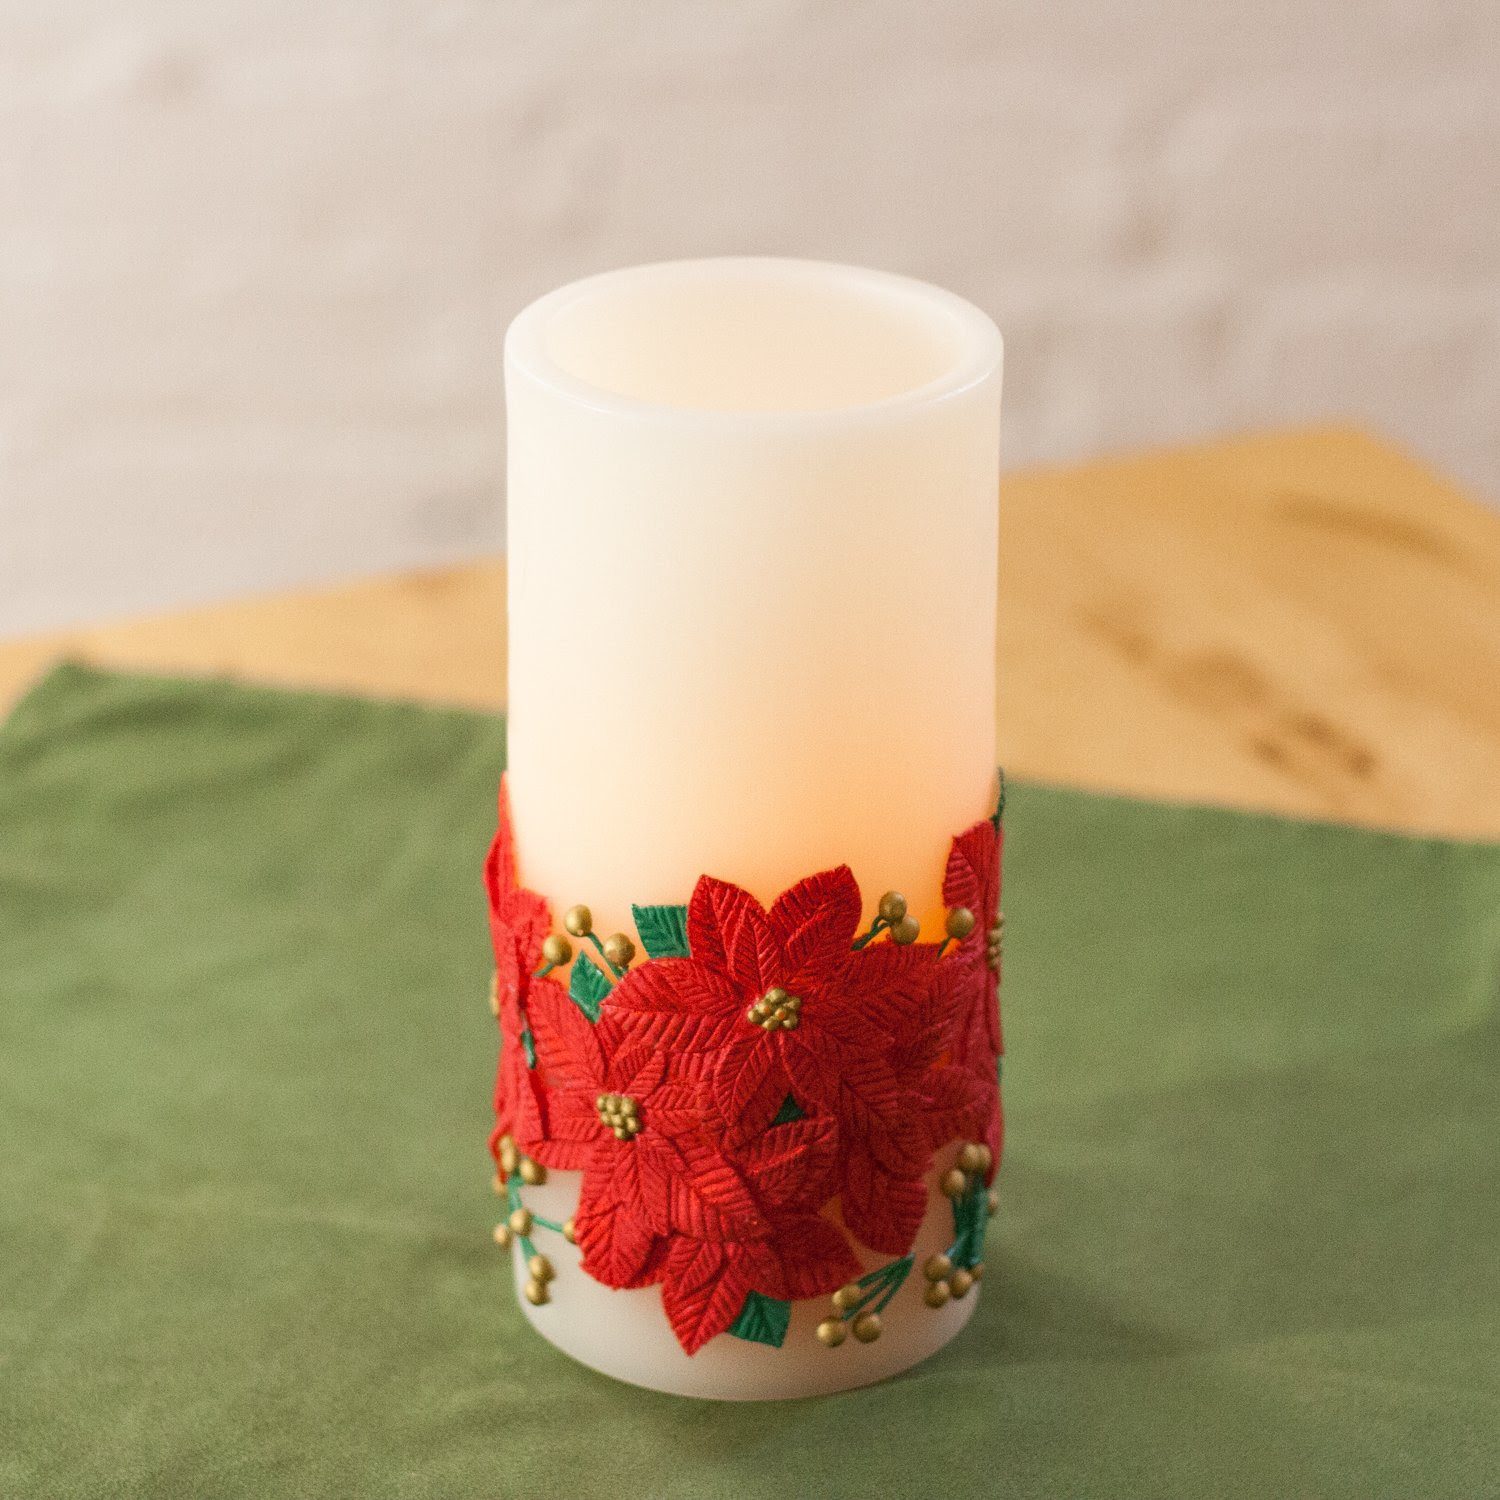 FLAMELESS AND SCENTED CANDLES FOR CHRISTMAS